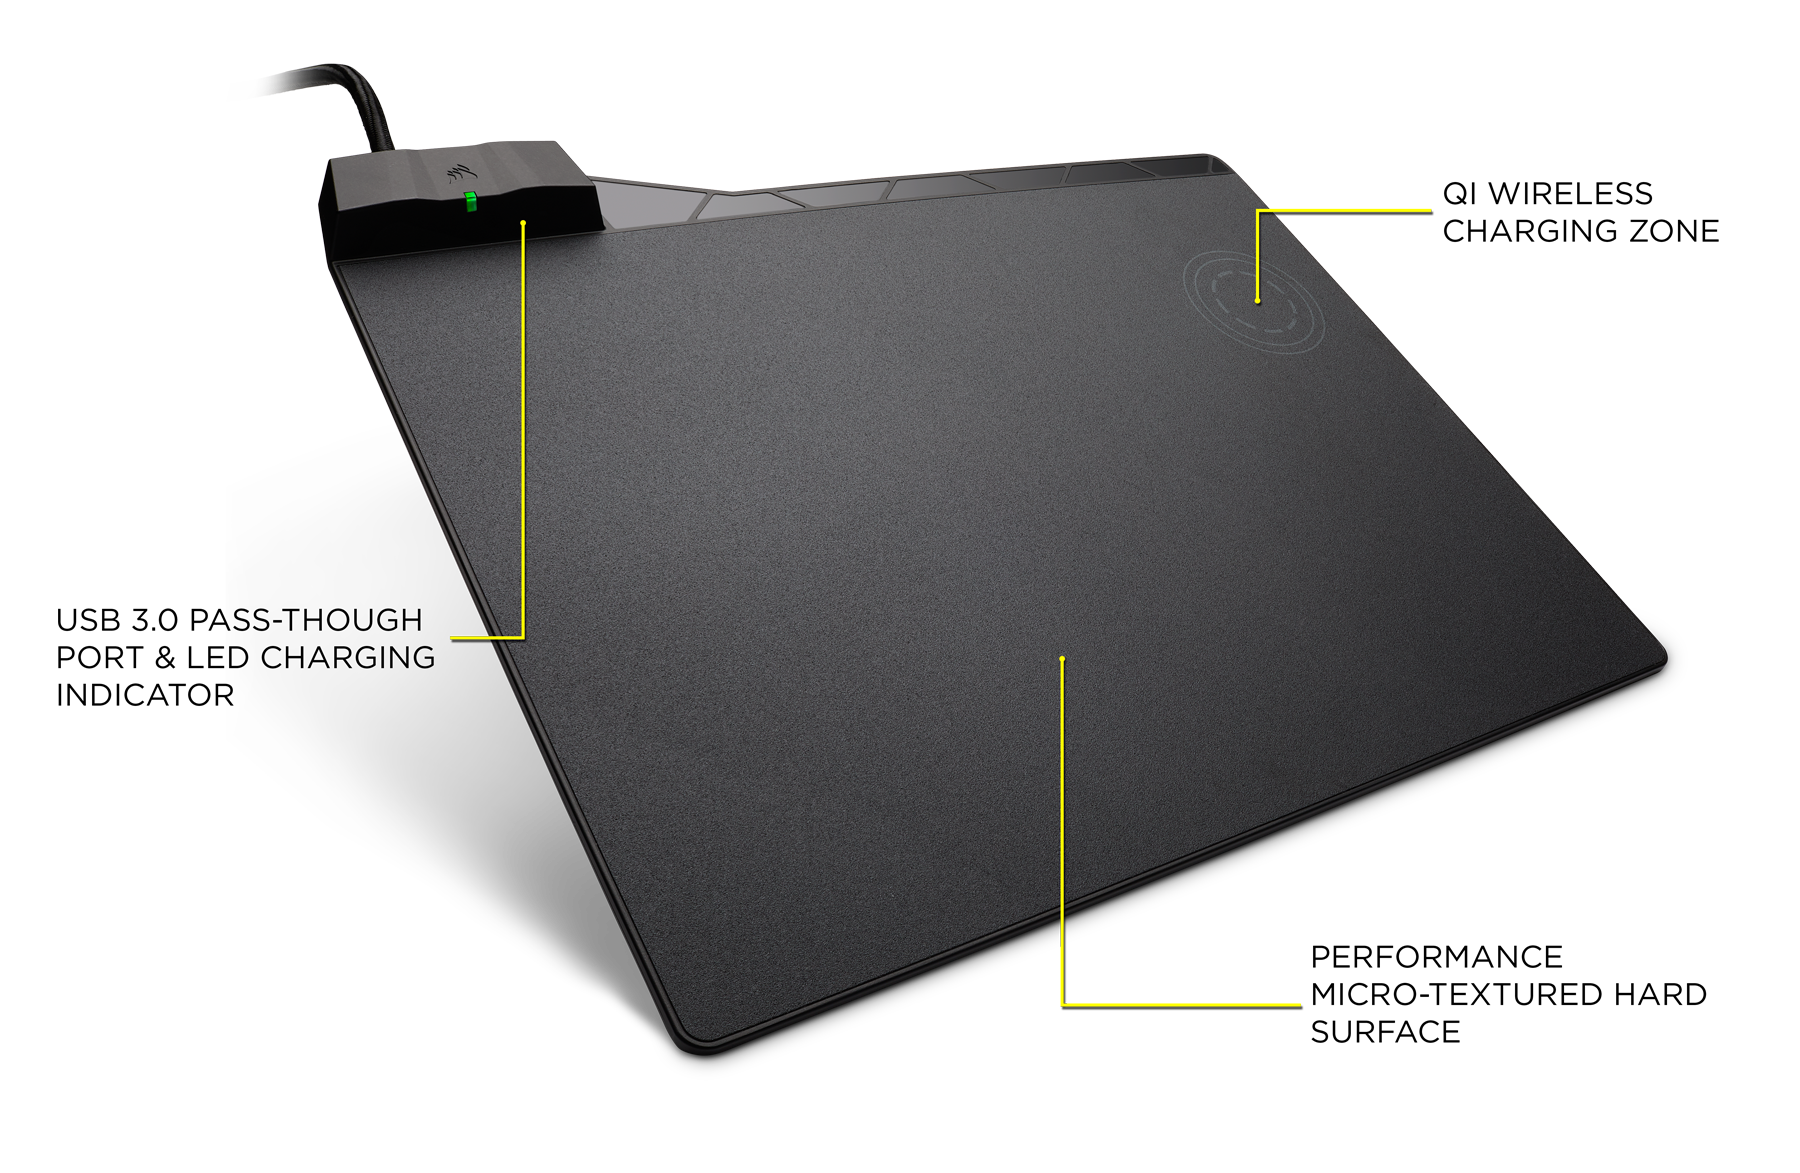 Wireless Charging Surface Wire Center Dc215 Serial Cable Wiring Diagramgif Corsair Gaming Mm1000 Qi Mouse Pad Newegg Com Rh